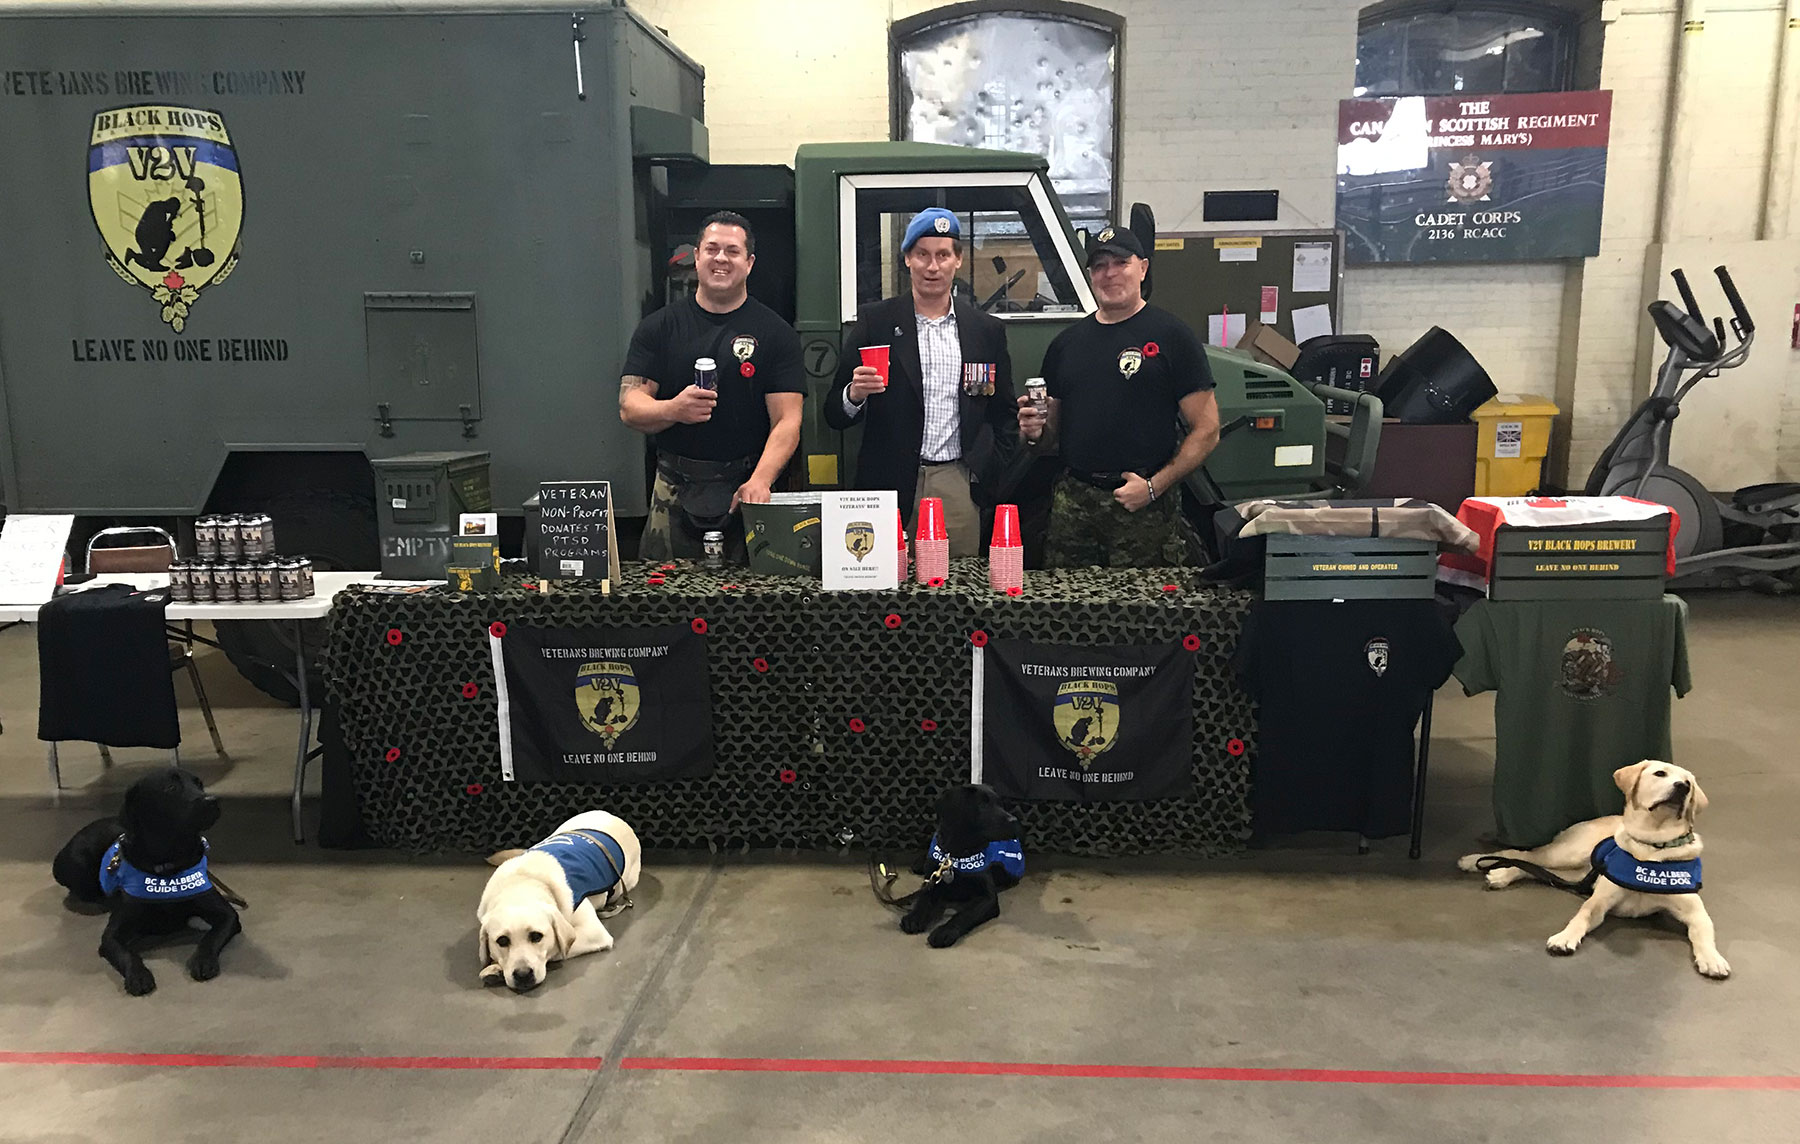 Sale proceeds from V2V Black Hops Brewing at the Remembrance Day Open House at the Armoury help support PTSD Service Dog Program